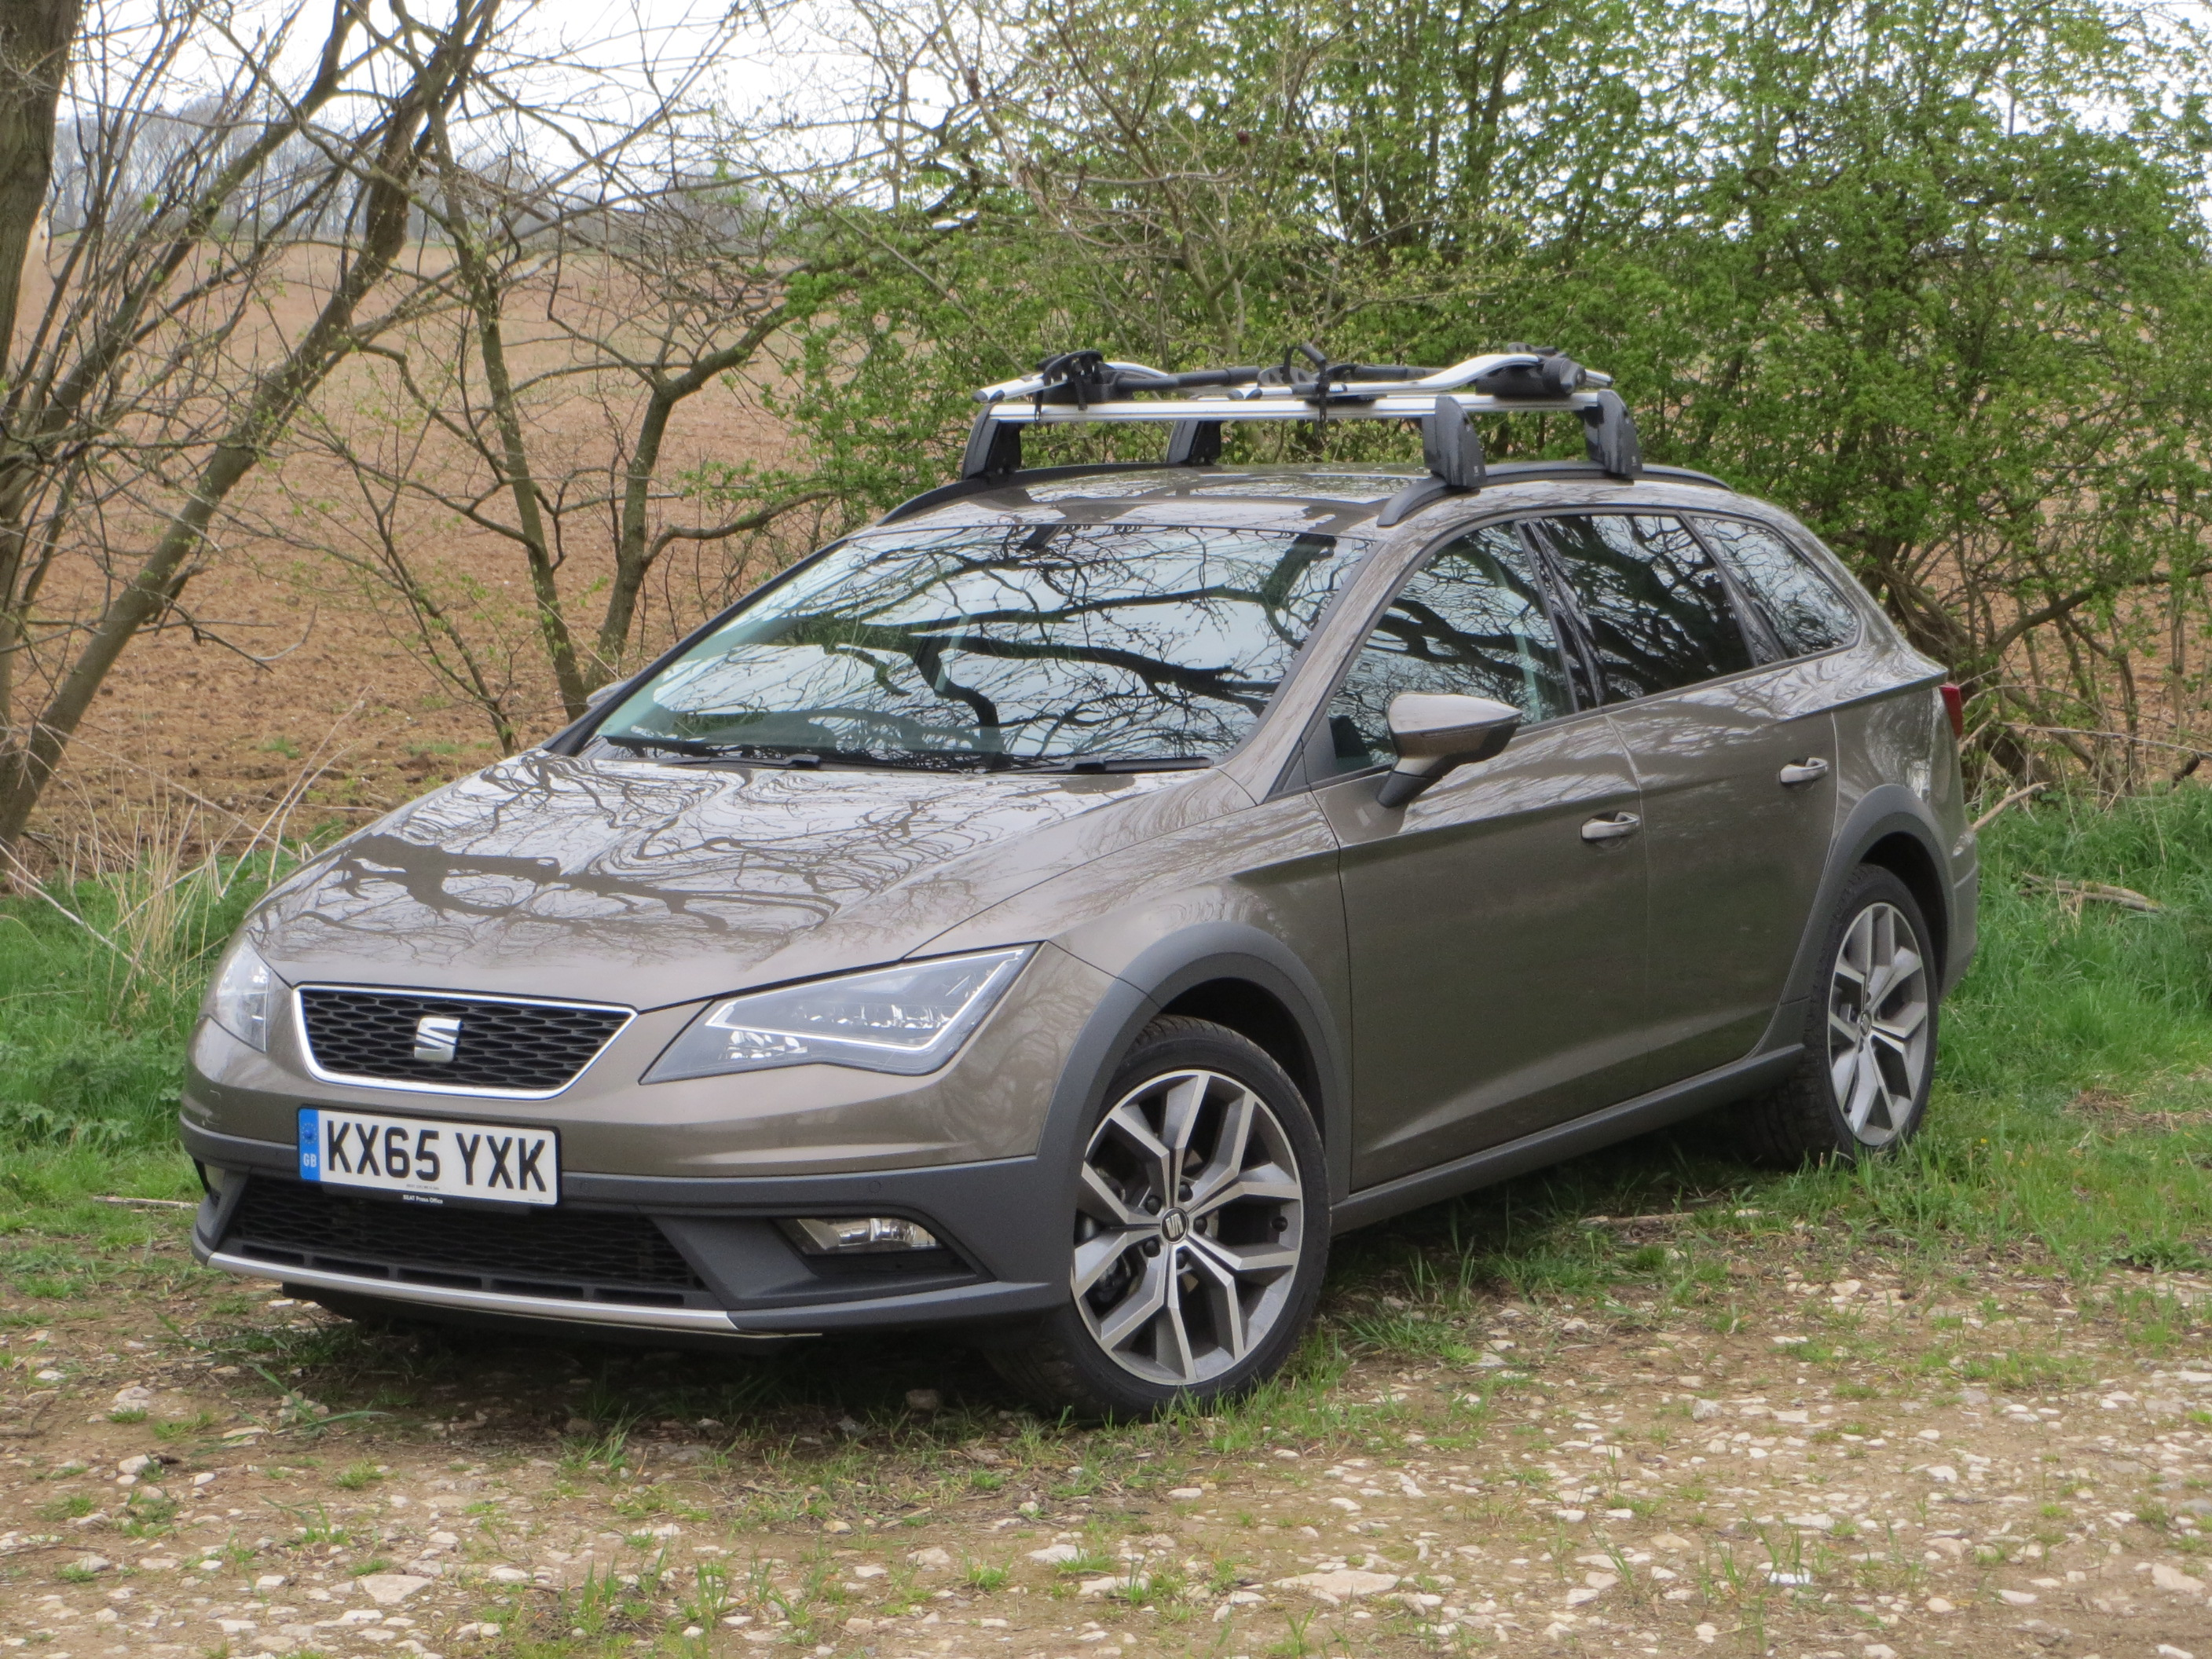 seat leon x perience se technology 2 0 tdi 150 ps 6 speed road test report and review wheel. Black Bedroom Furniture Sets. Home Design Ideas